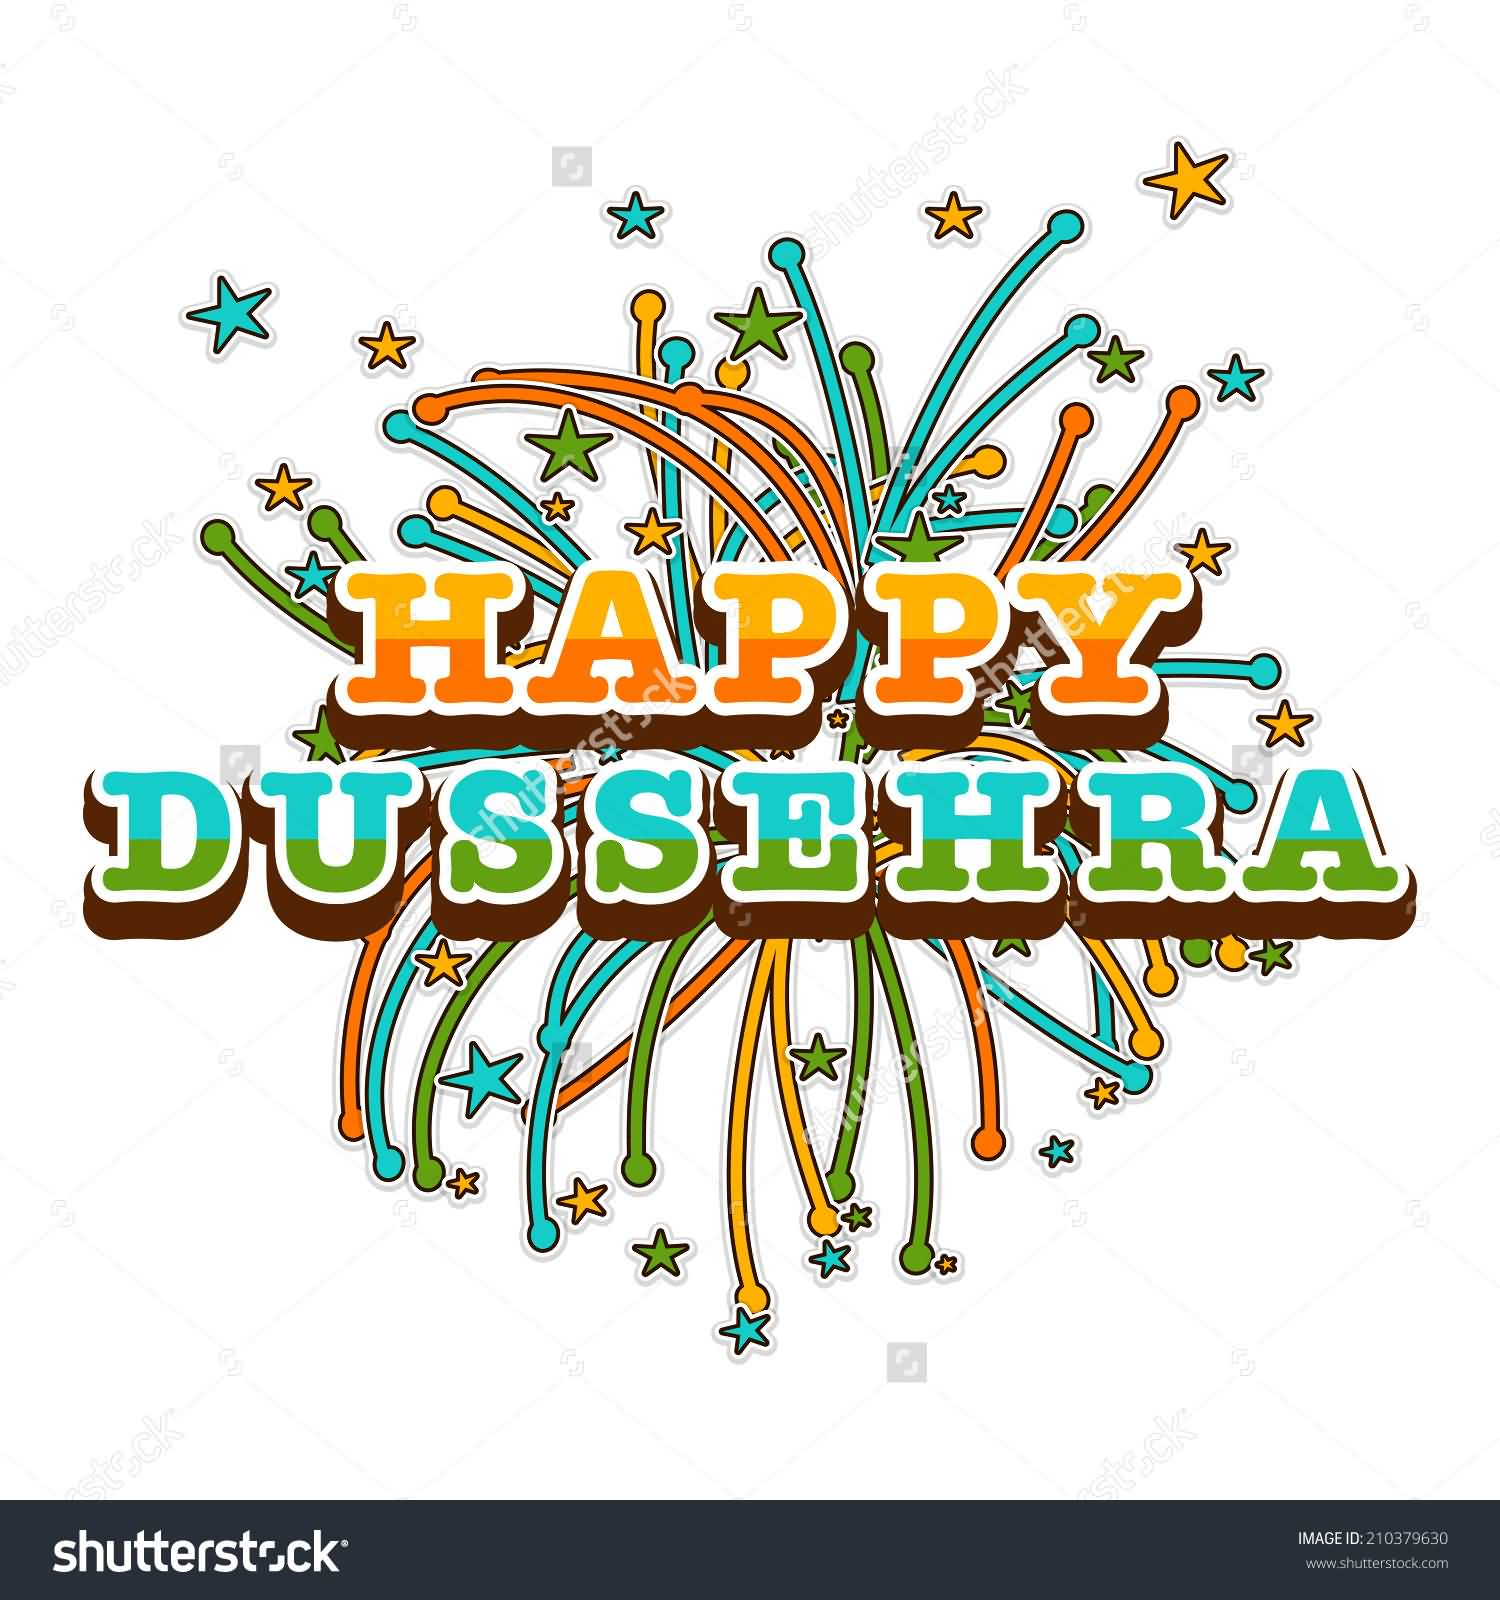 62 most beautiful happy dussehra 2016 greeting pictures and photos 62 most beautiful happy dussehra 2016